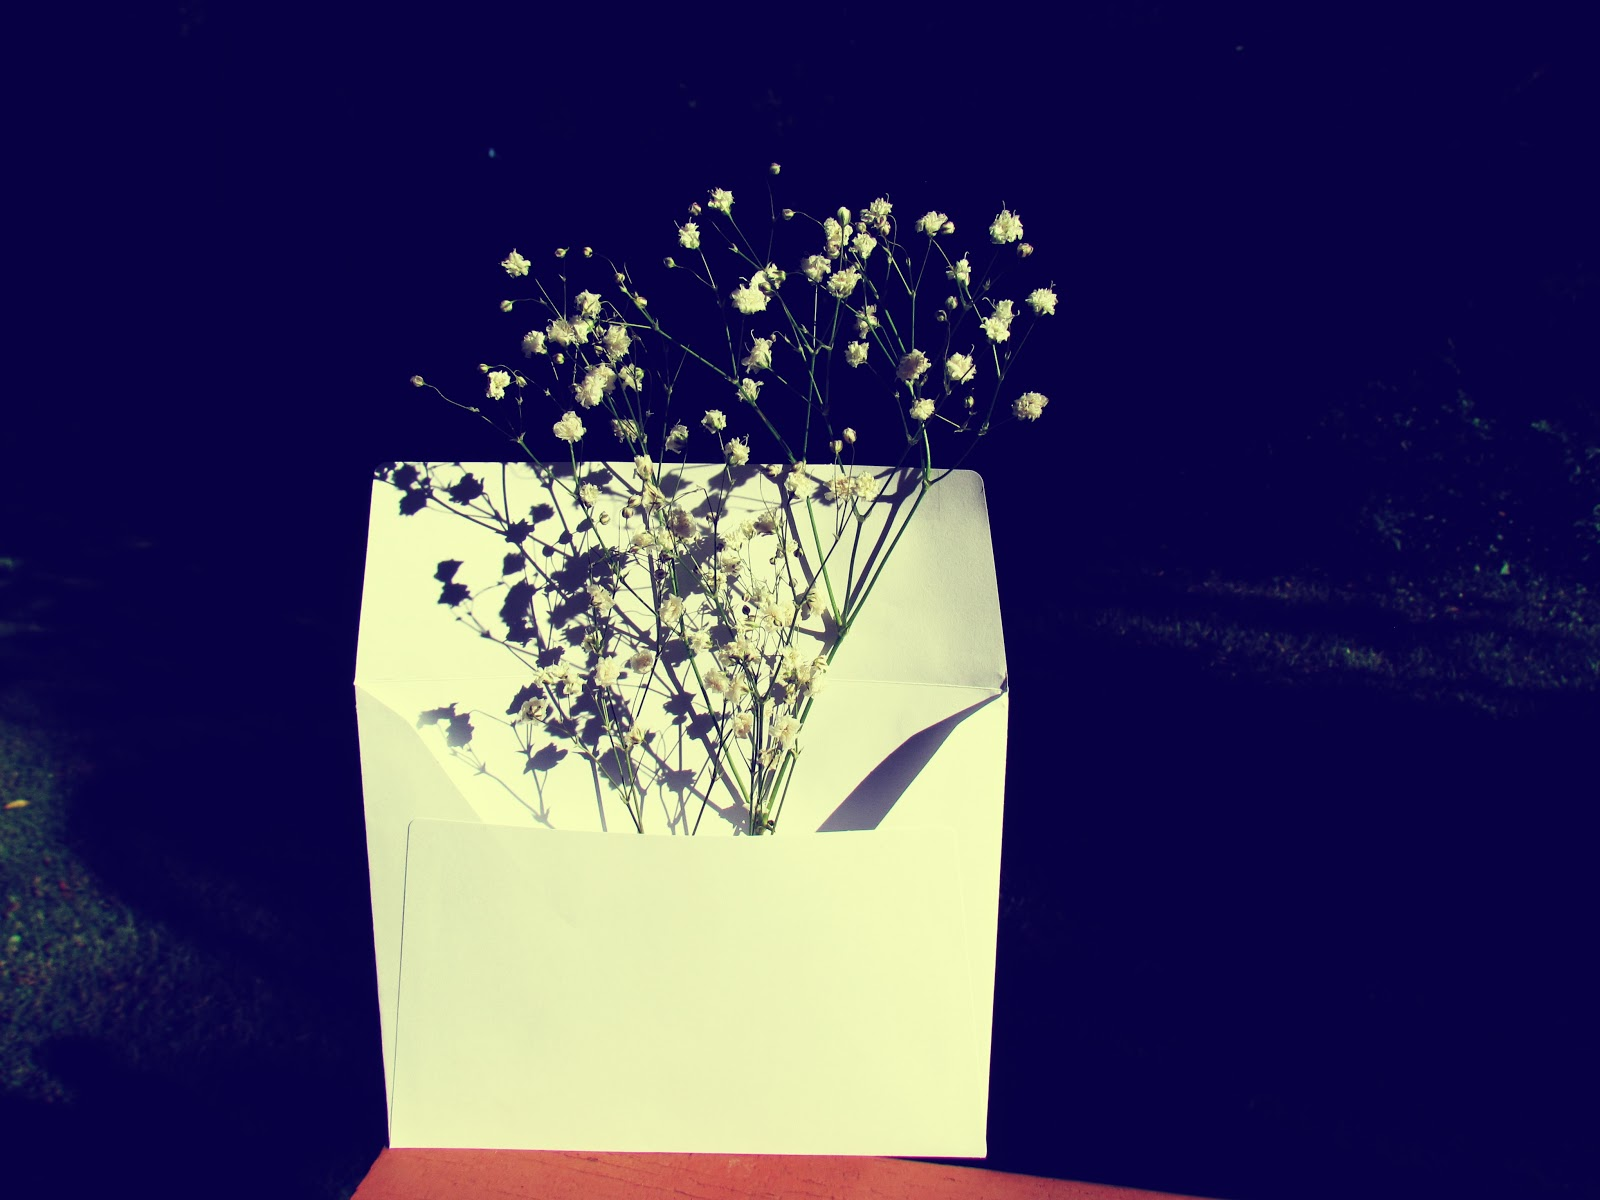 Nature Art Gift + Envelope in Gloom and Glow White + White Floral Arrangement